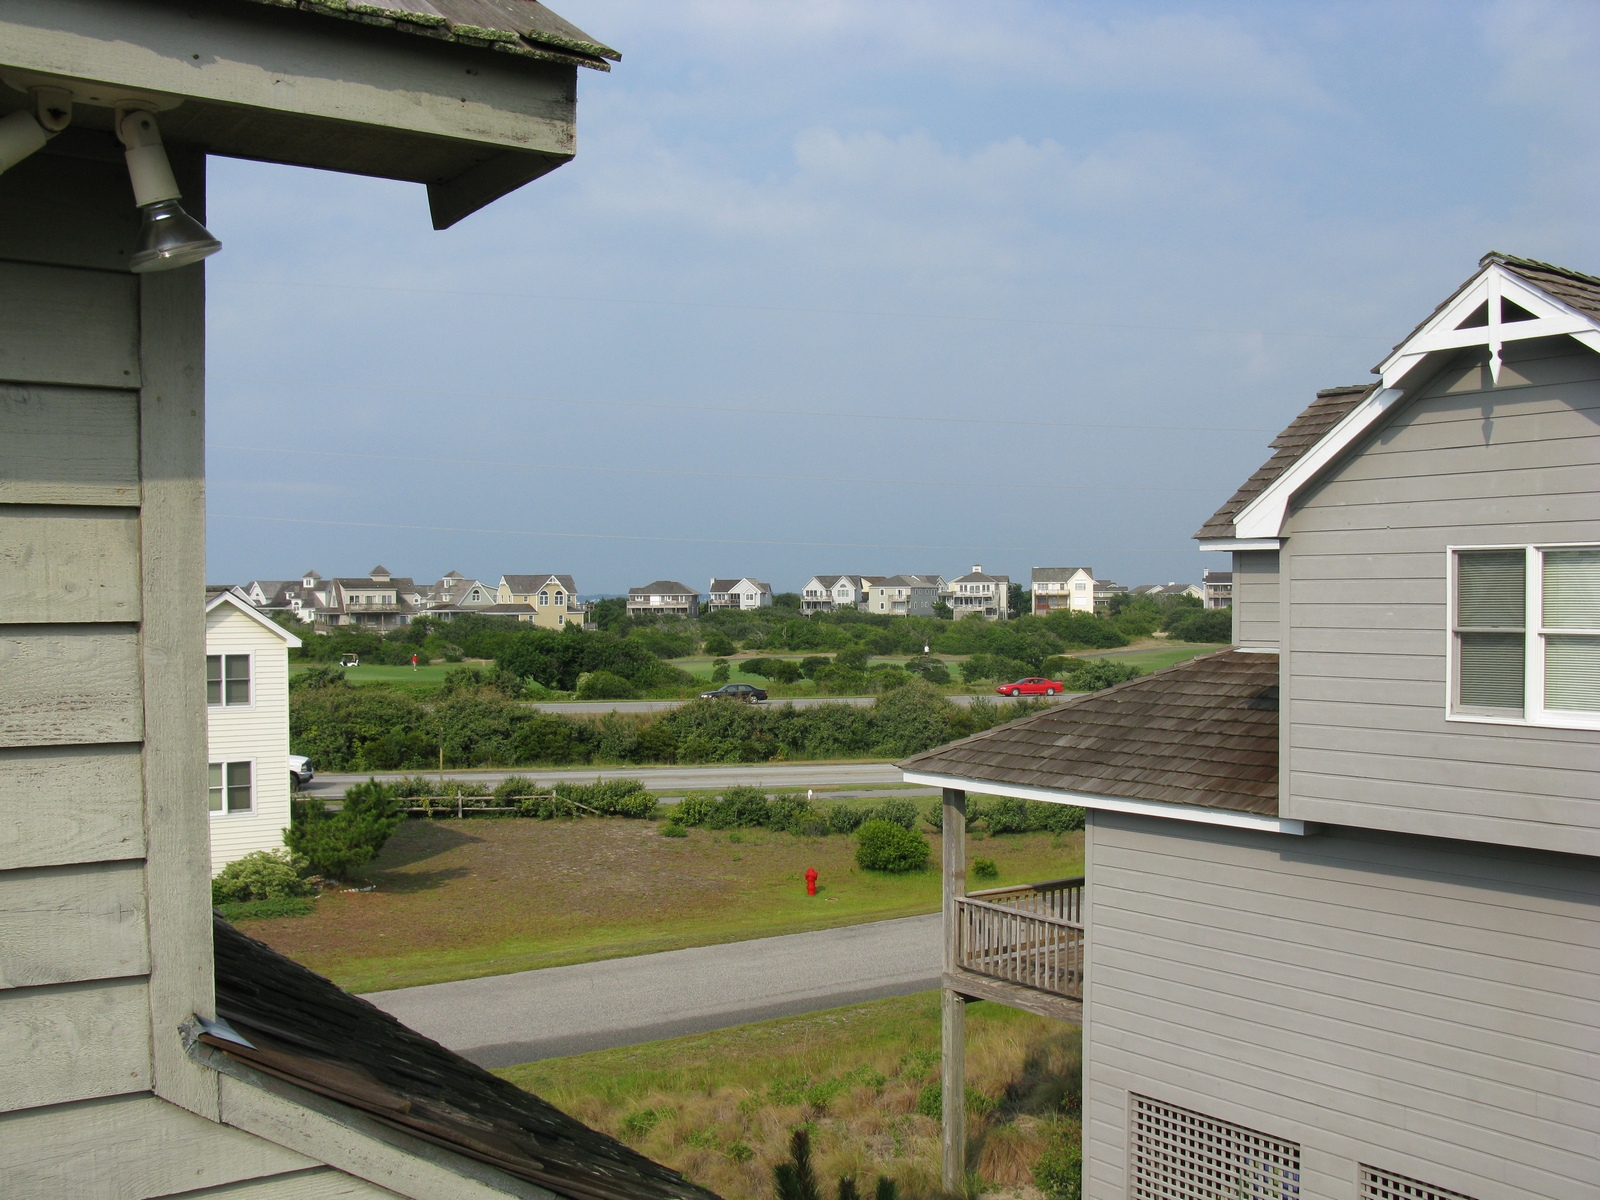 obx_sound_side_houses.jpg